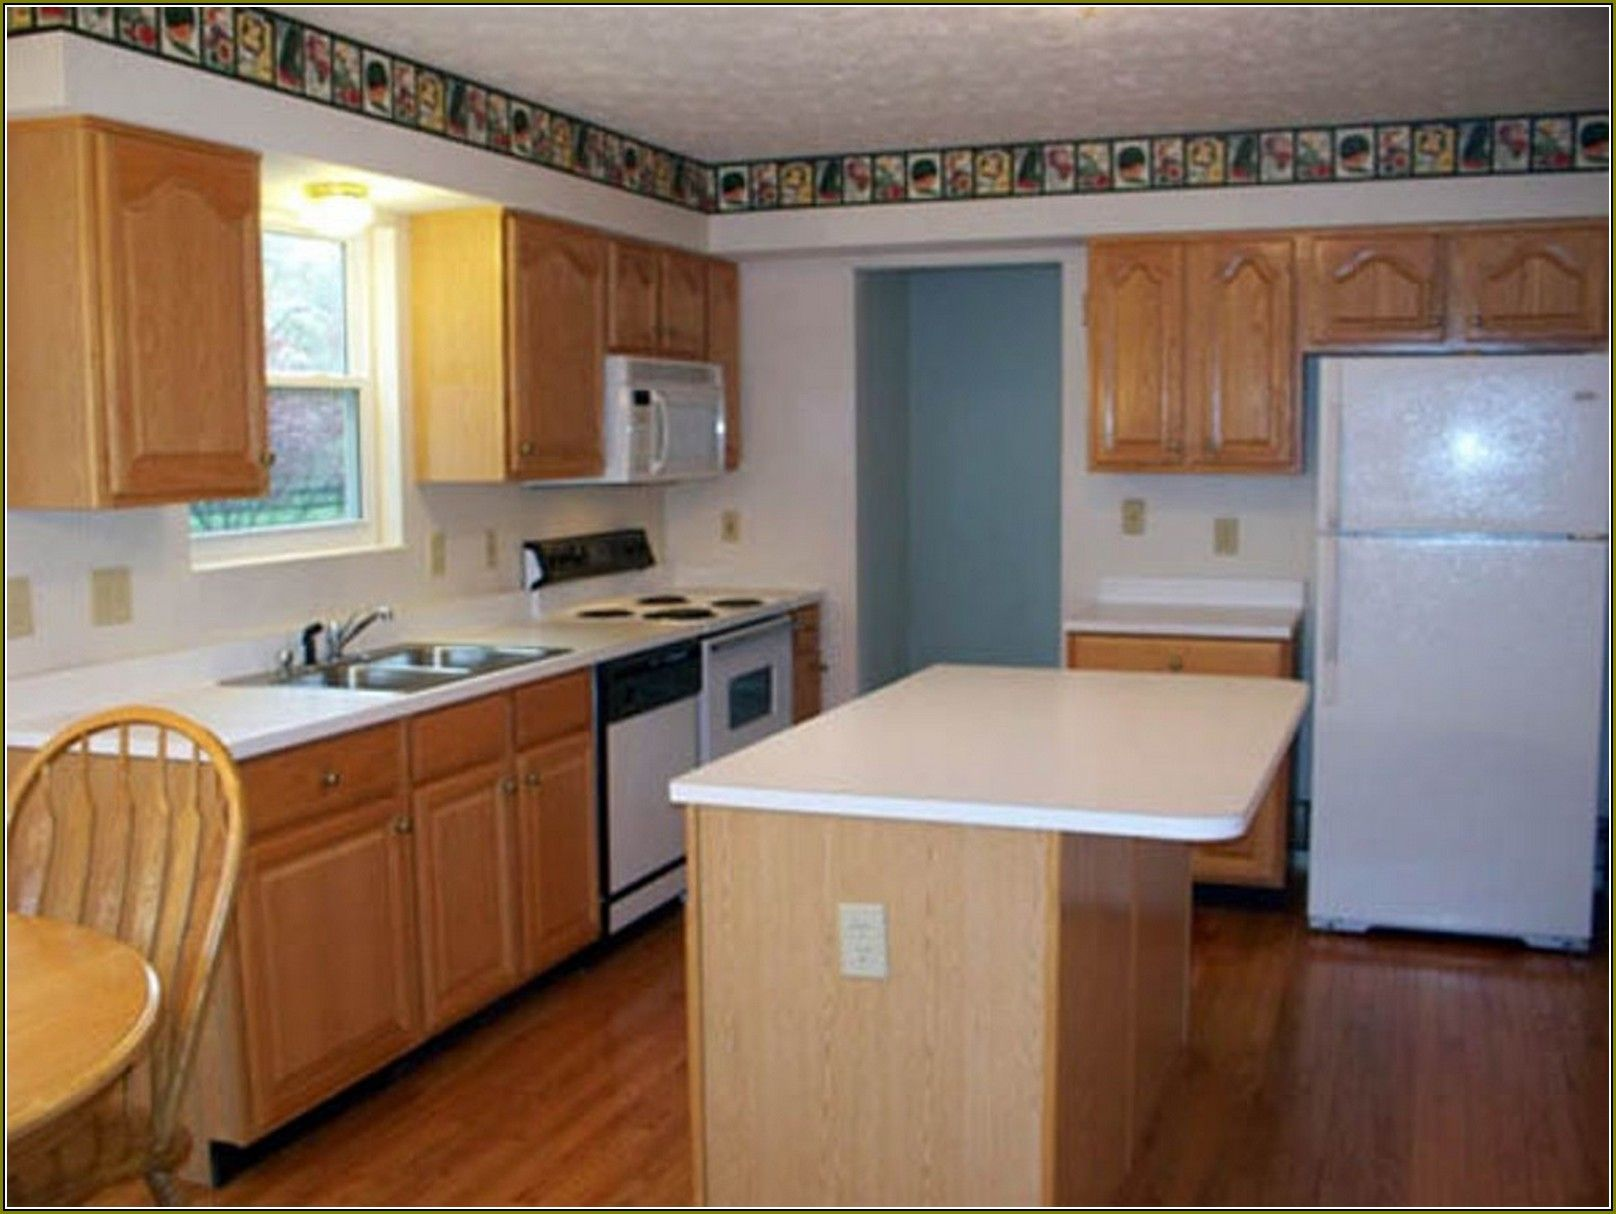 Unfinished Oak Kitchen Cabinets Home Depot Canada Design Ideas Pictures  Options Tipsexplore And